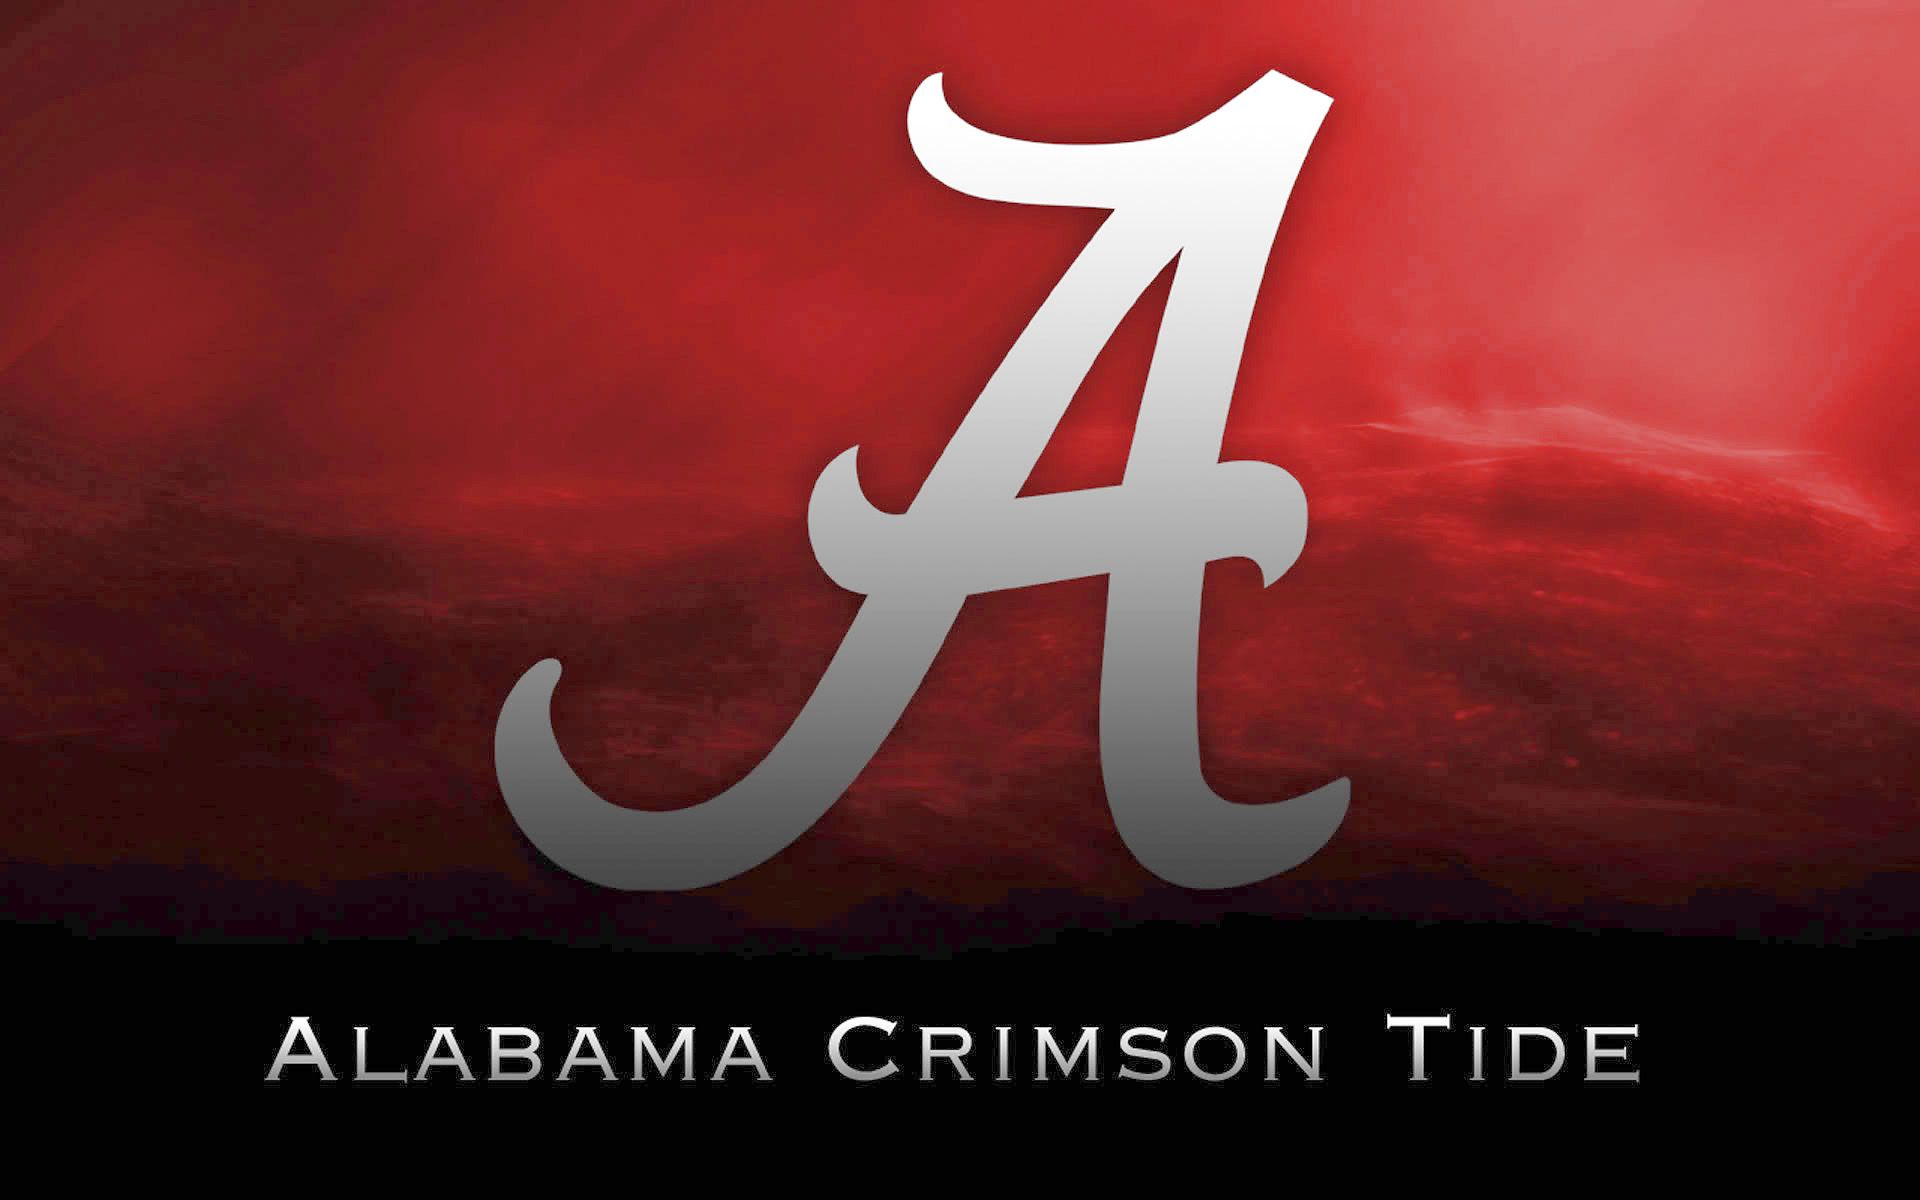 Pictures Free Alabama Crimson Tide Wallpapers Crimson Tide Alabama Alabama Crimson Tide